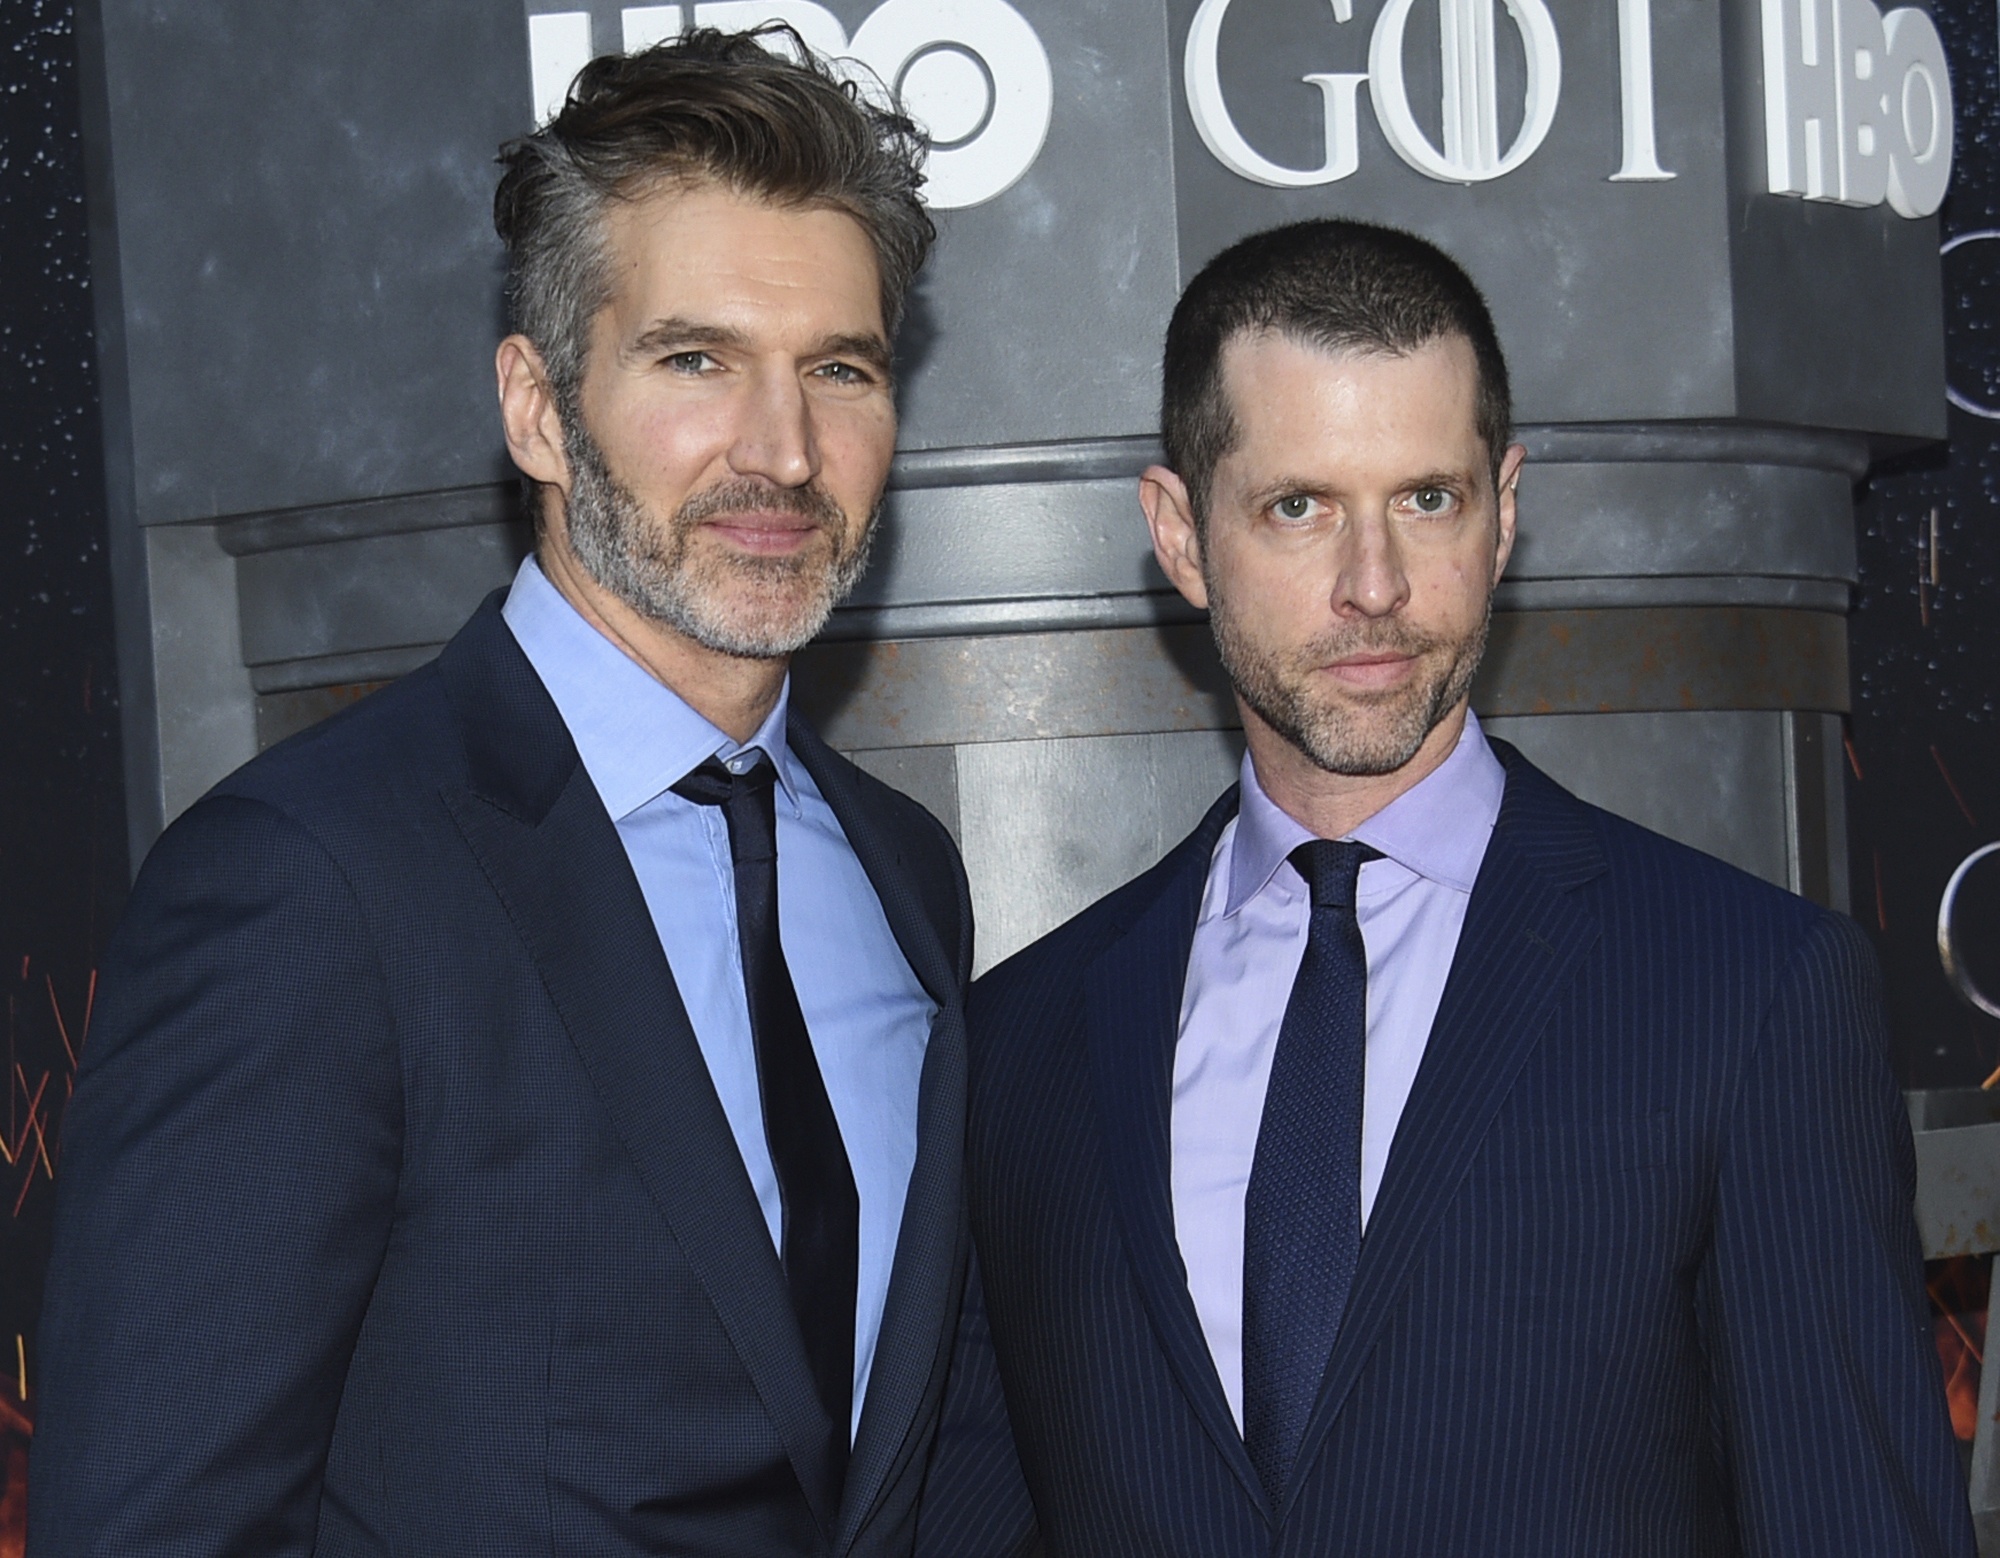 David Benioff and D.B. Weiss have shared their plans for the finale. Credit: PA